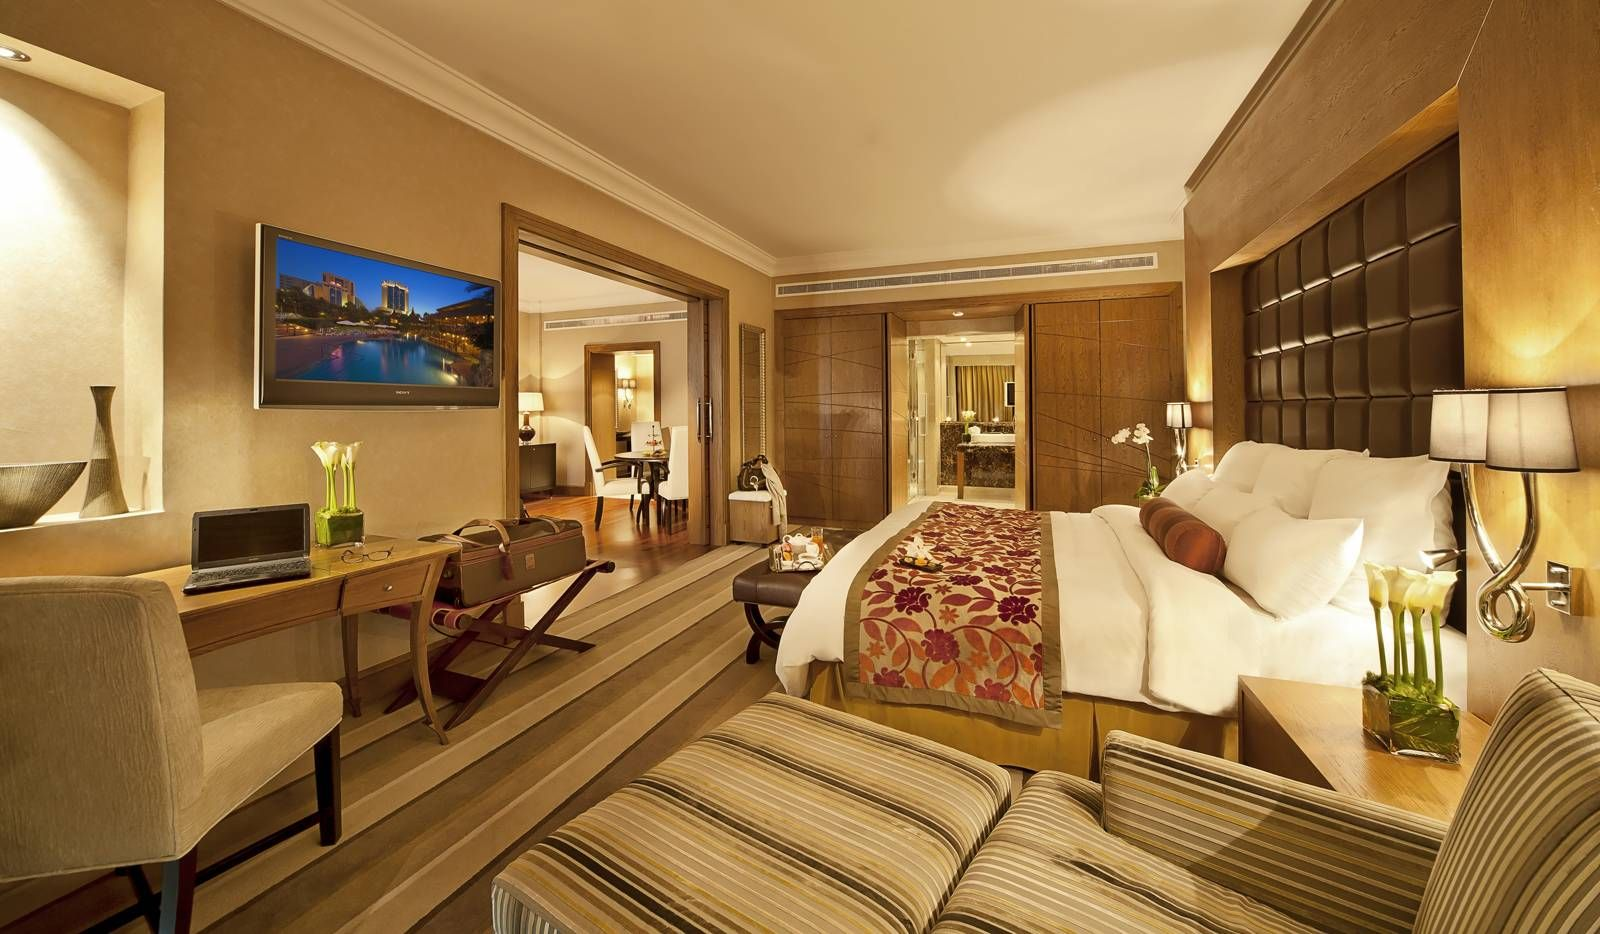 Luxury master bedroom suites luxury accomodation in for Luxury hotel bedroom interior design